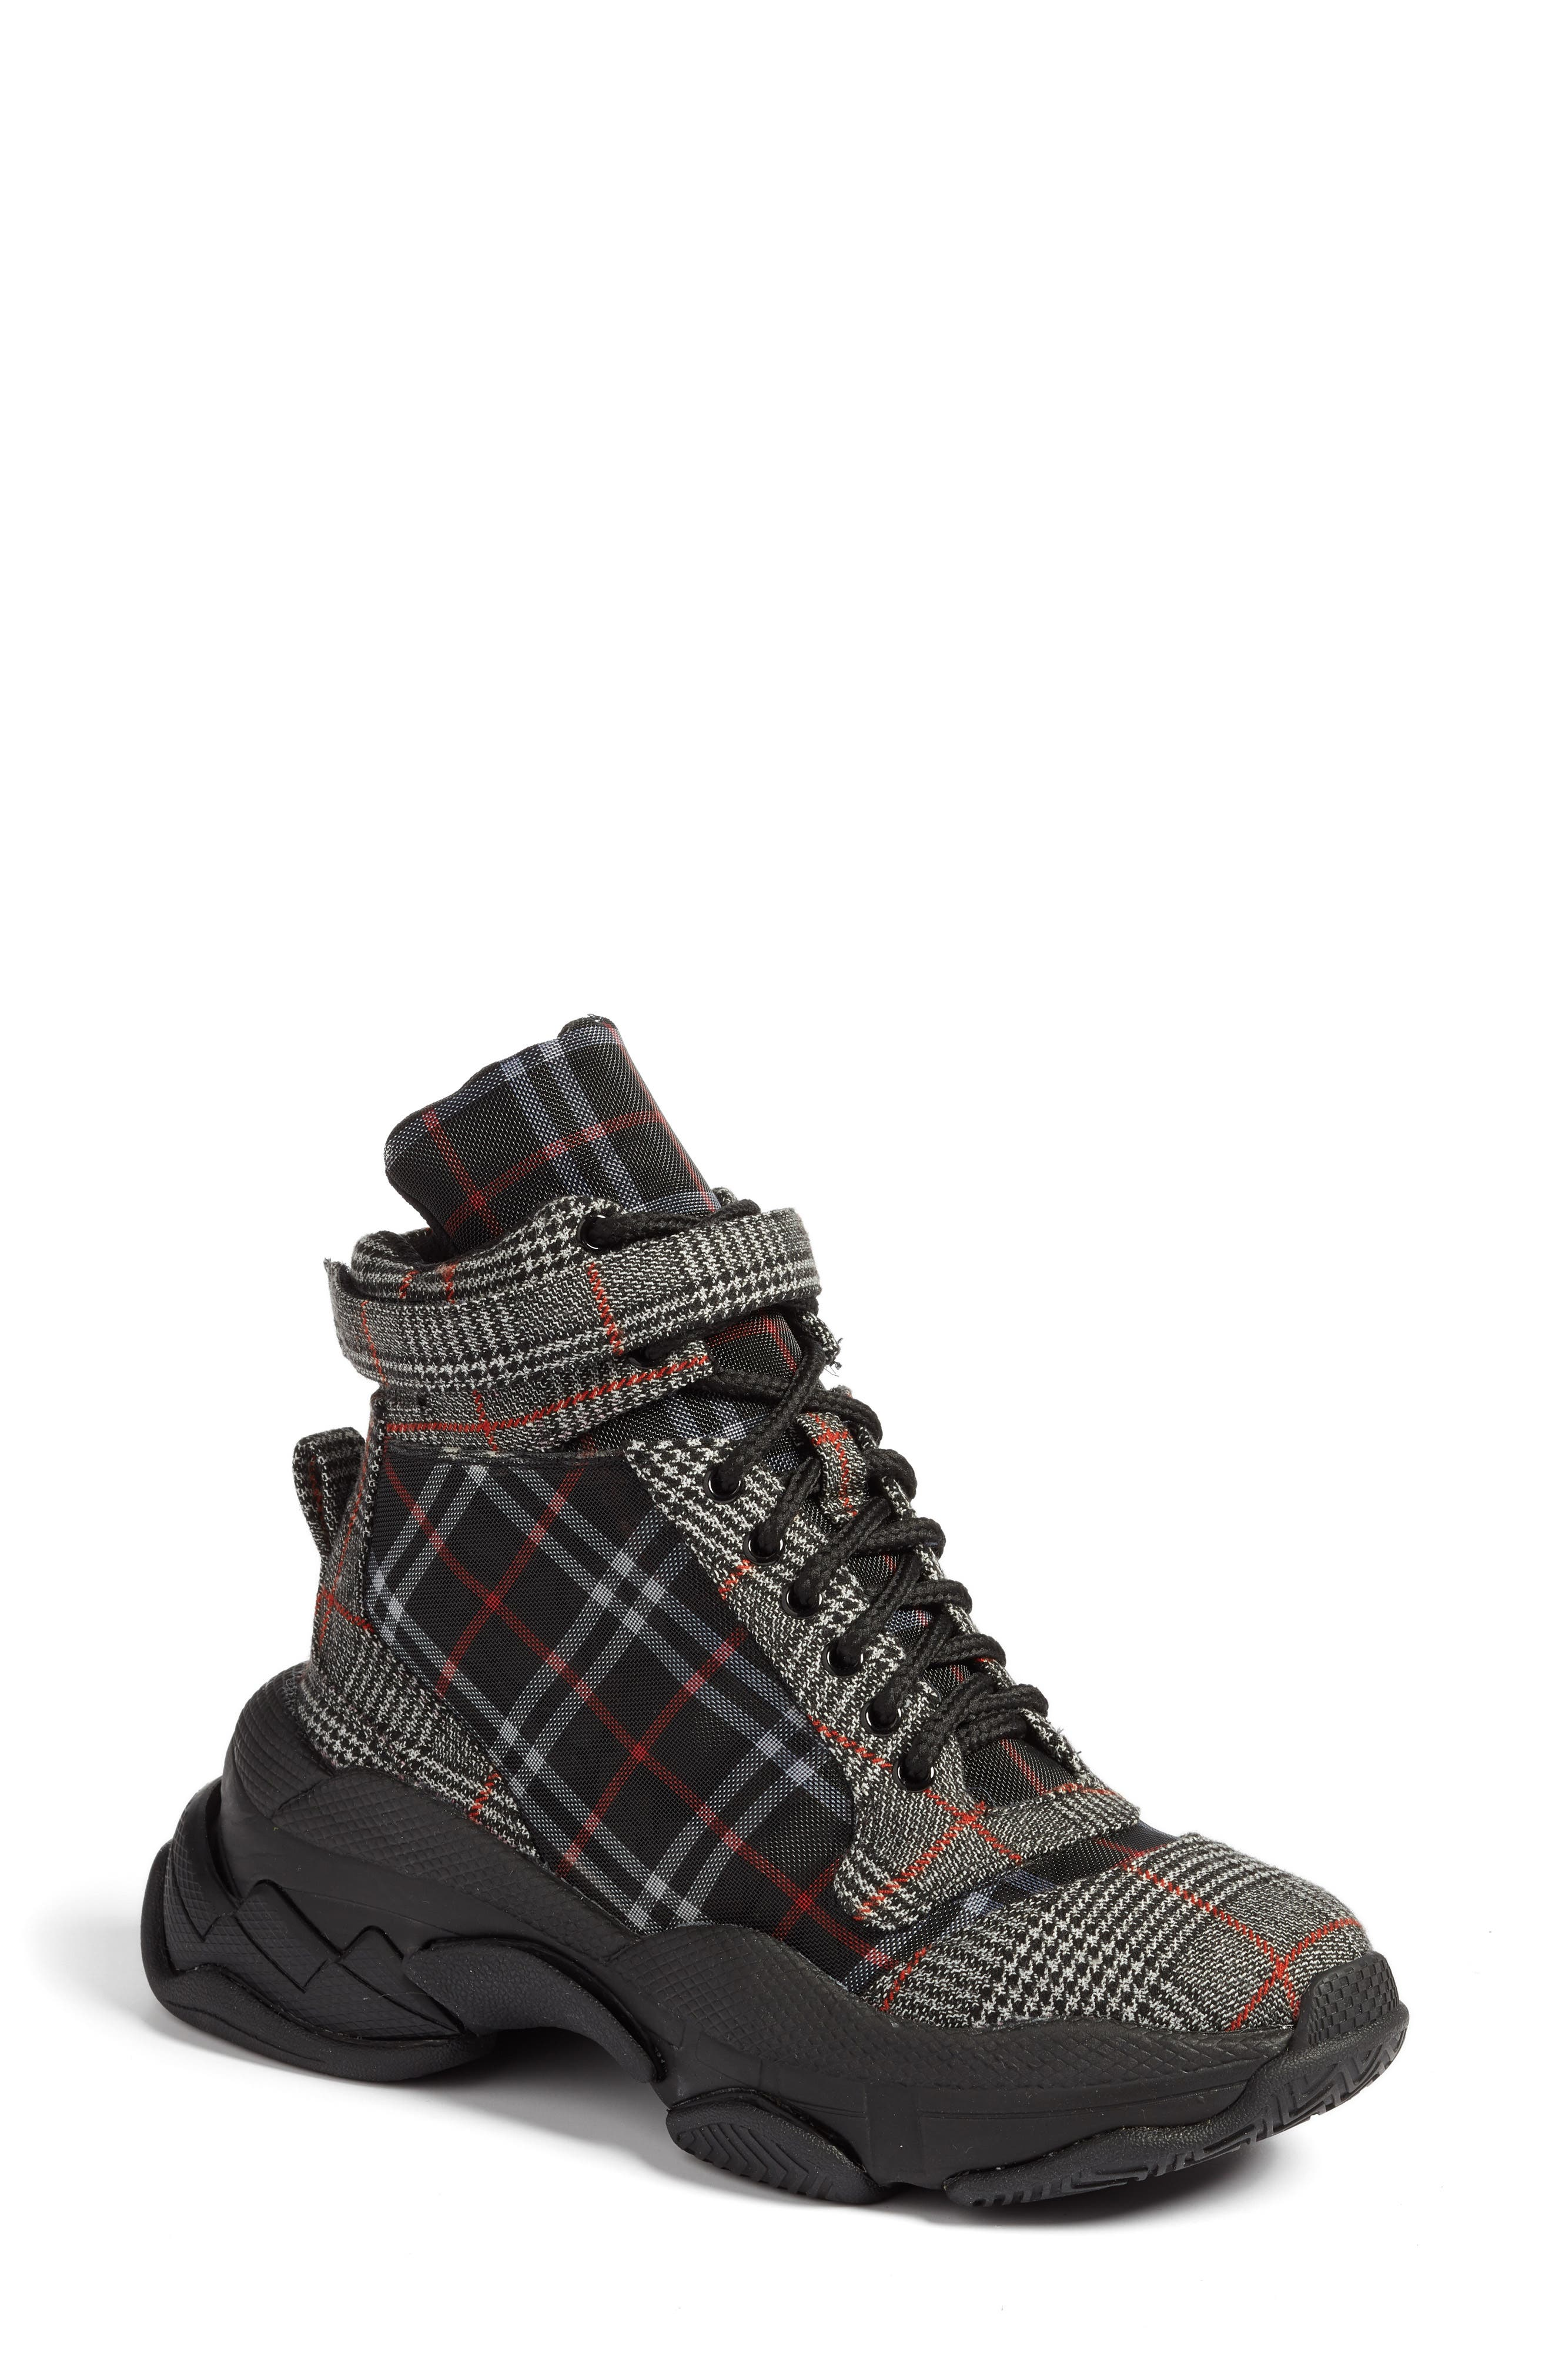 JEFFREY CAMPBELL Disc-2 Sneaker, Main, color, GREY BLACK PLAID COMBO